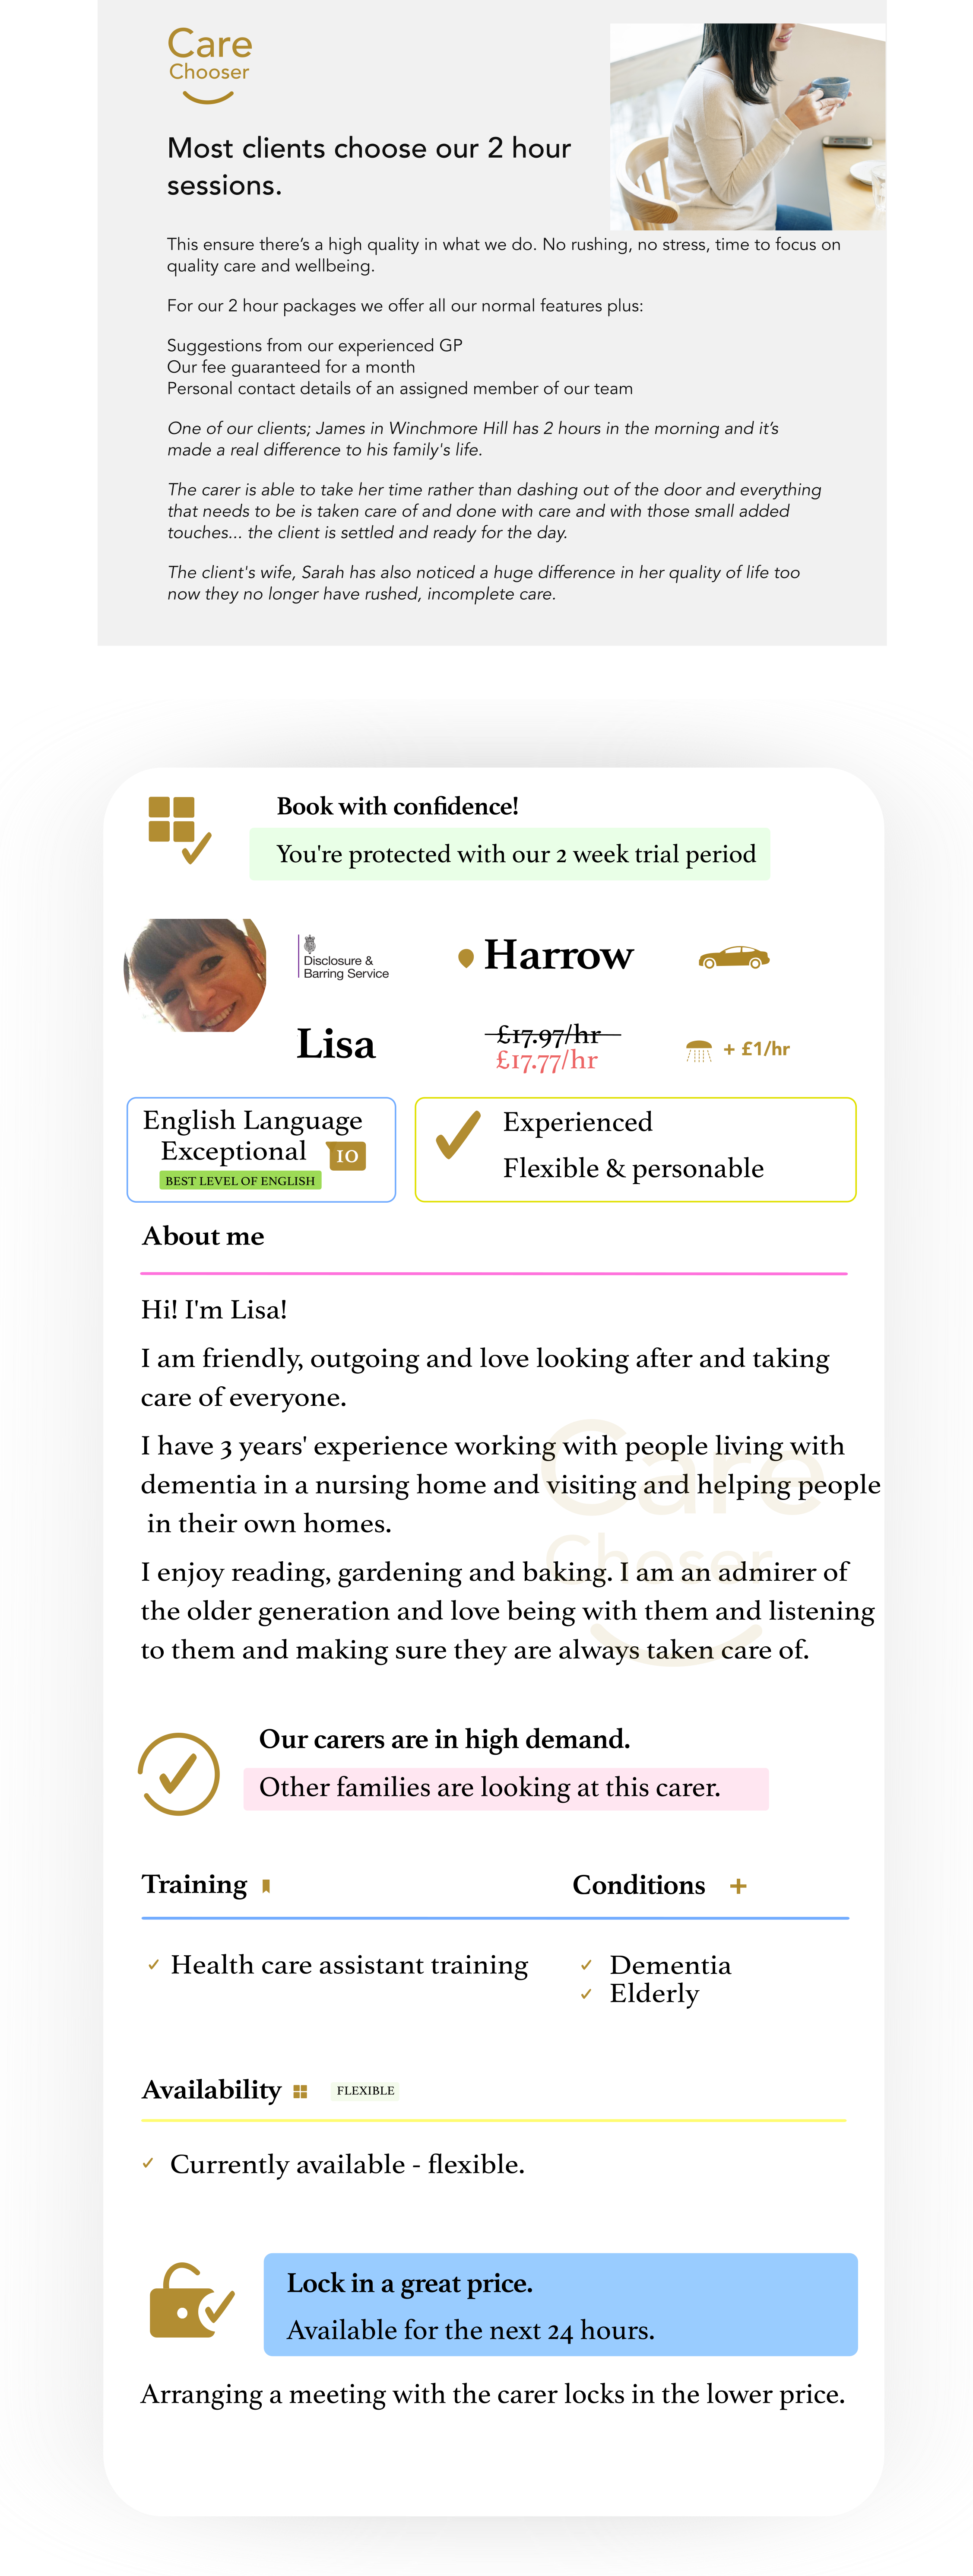 Lisa - home care in Harrow.png